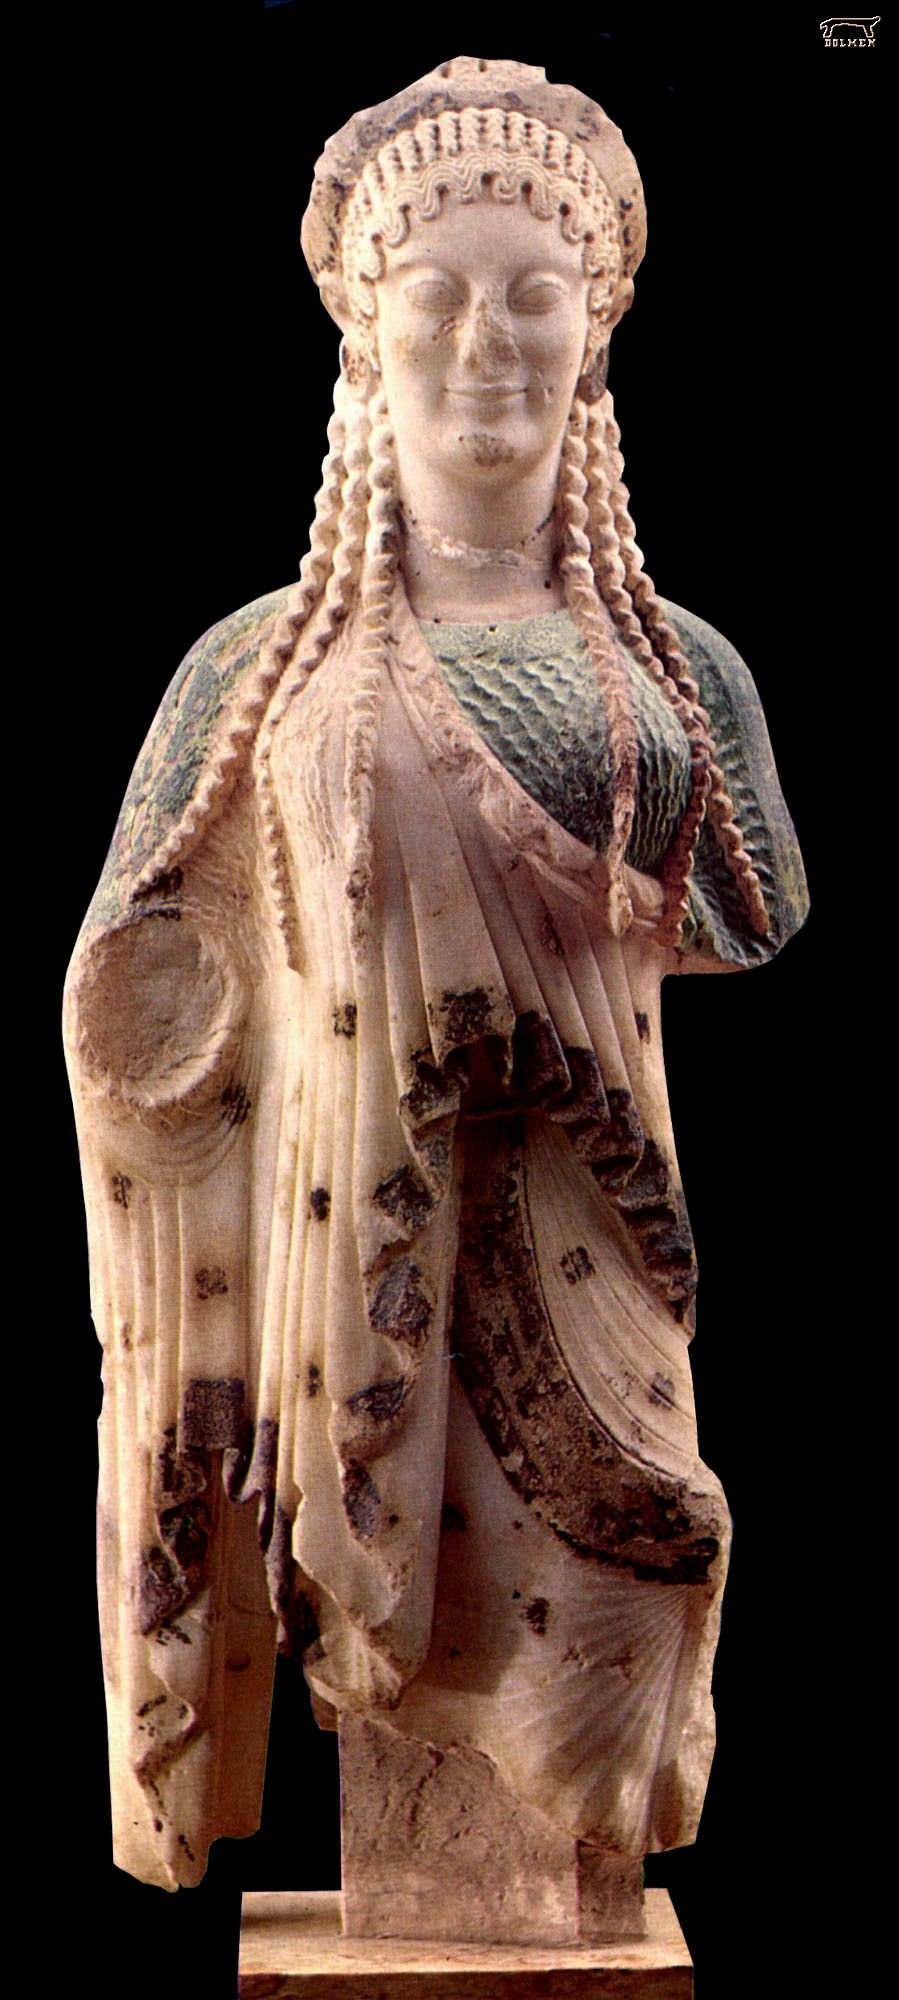 ARCHAIC: Kore from the acropolis, Athens. c. 510 BCE. the elaborate  clothing of the kore figure hides the body un… | Ancient greek art, Archaic  greece, Ancient art